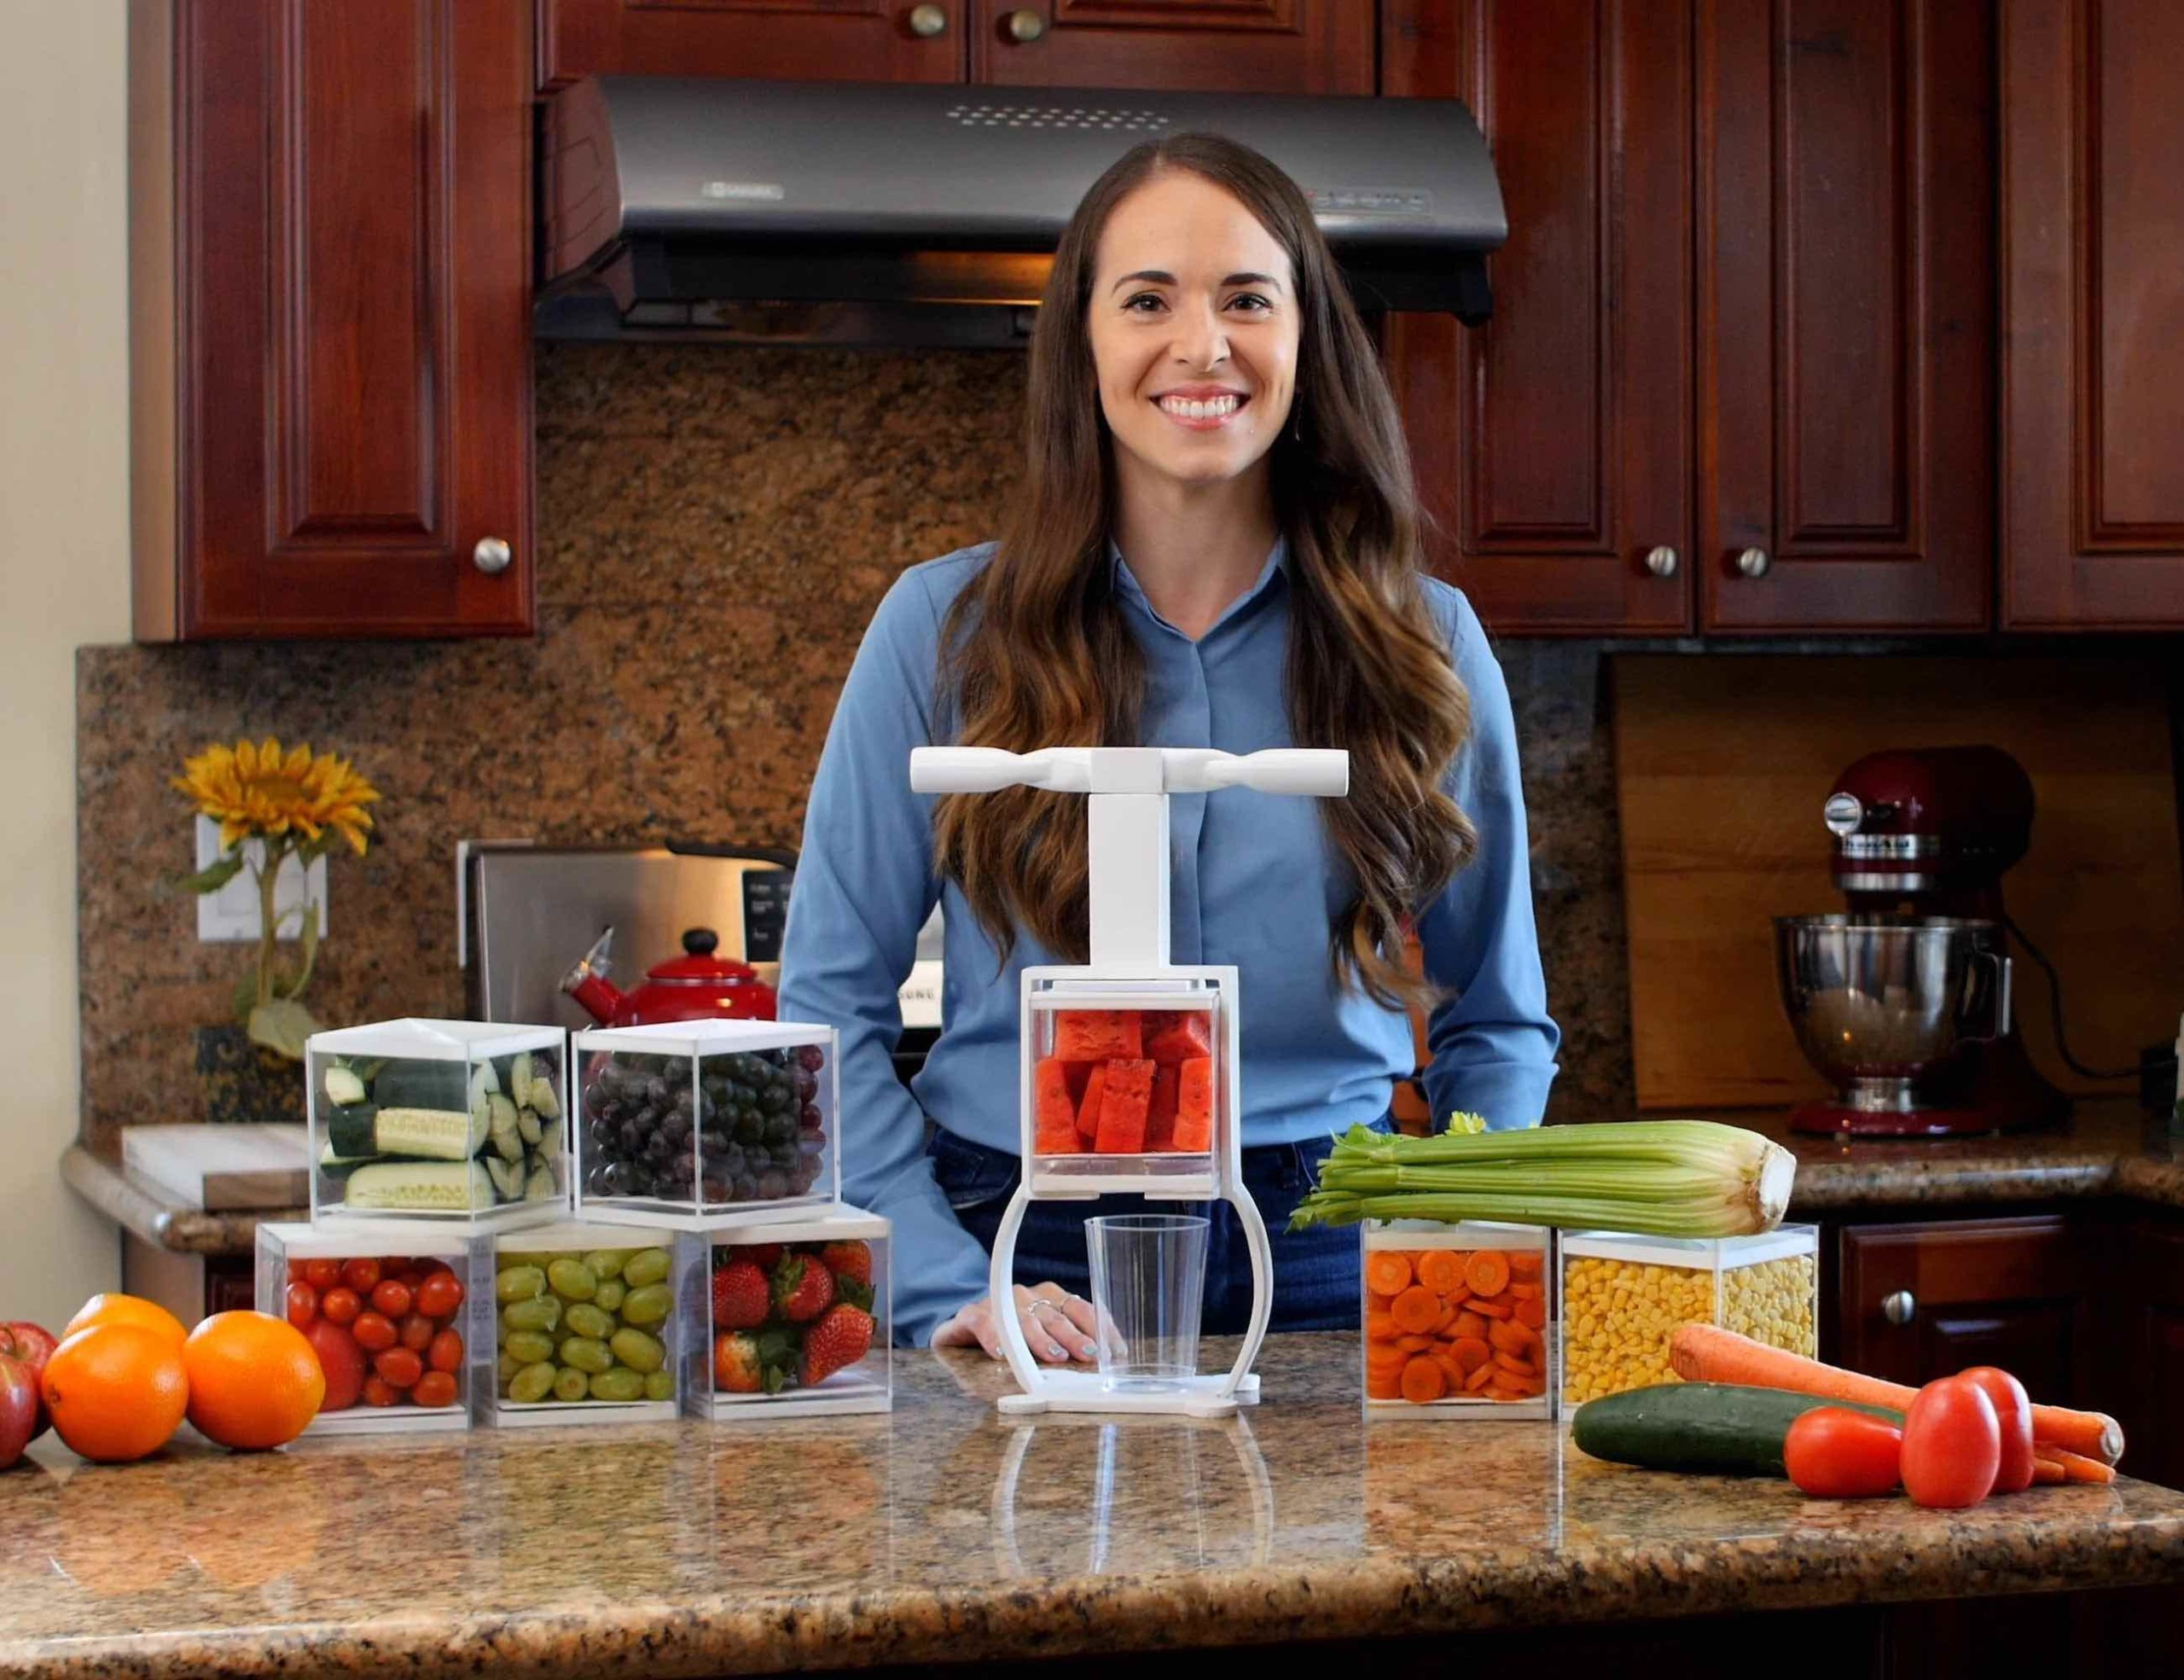 Coolest Juicer Affordable Manual Juicer doesn't let food go to waste